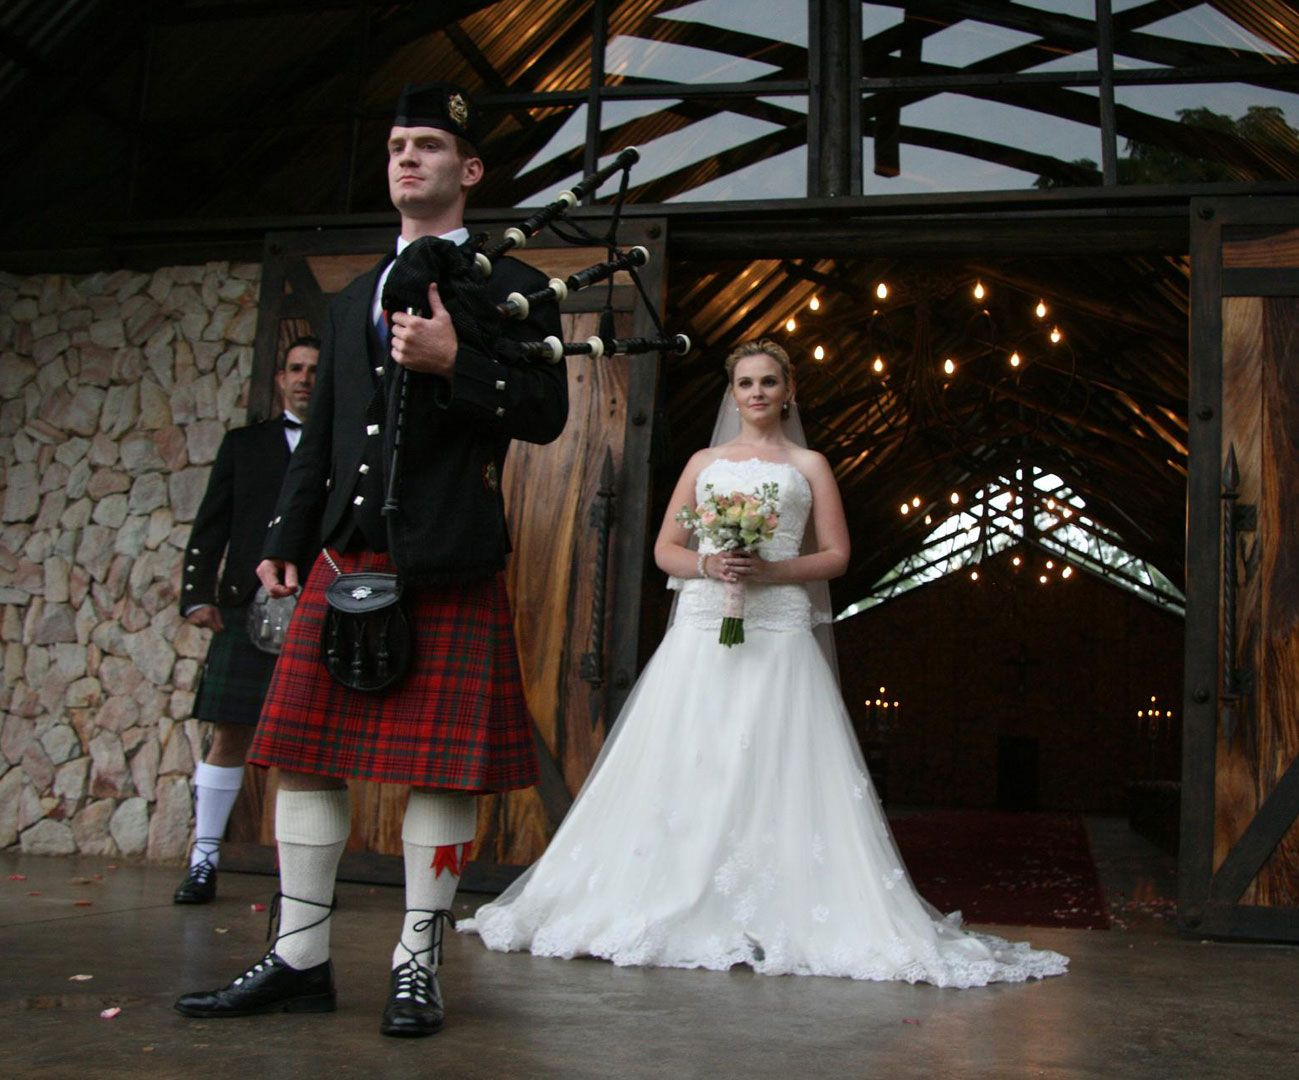 Bagpiper for Hire weddings